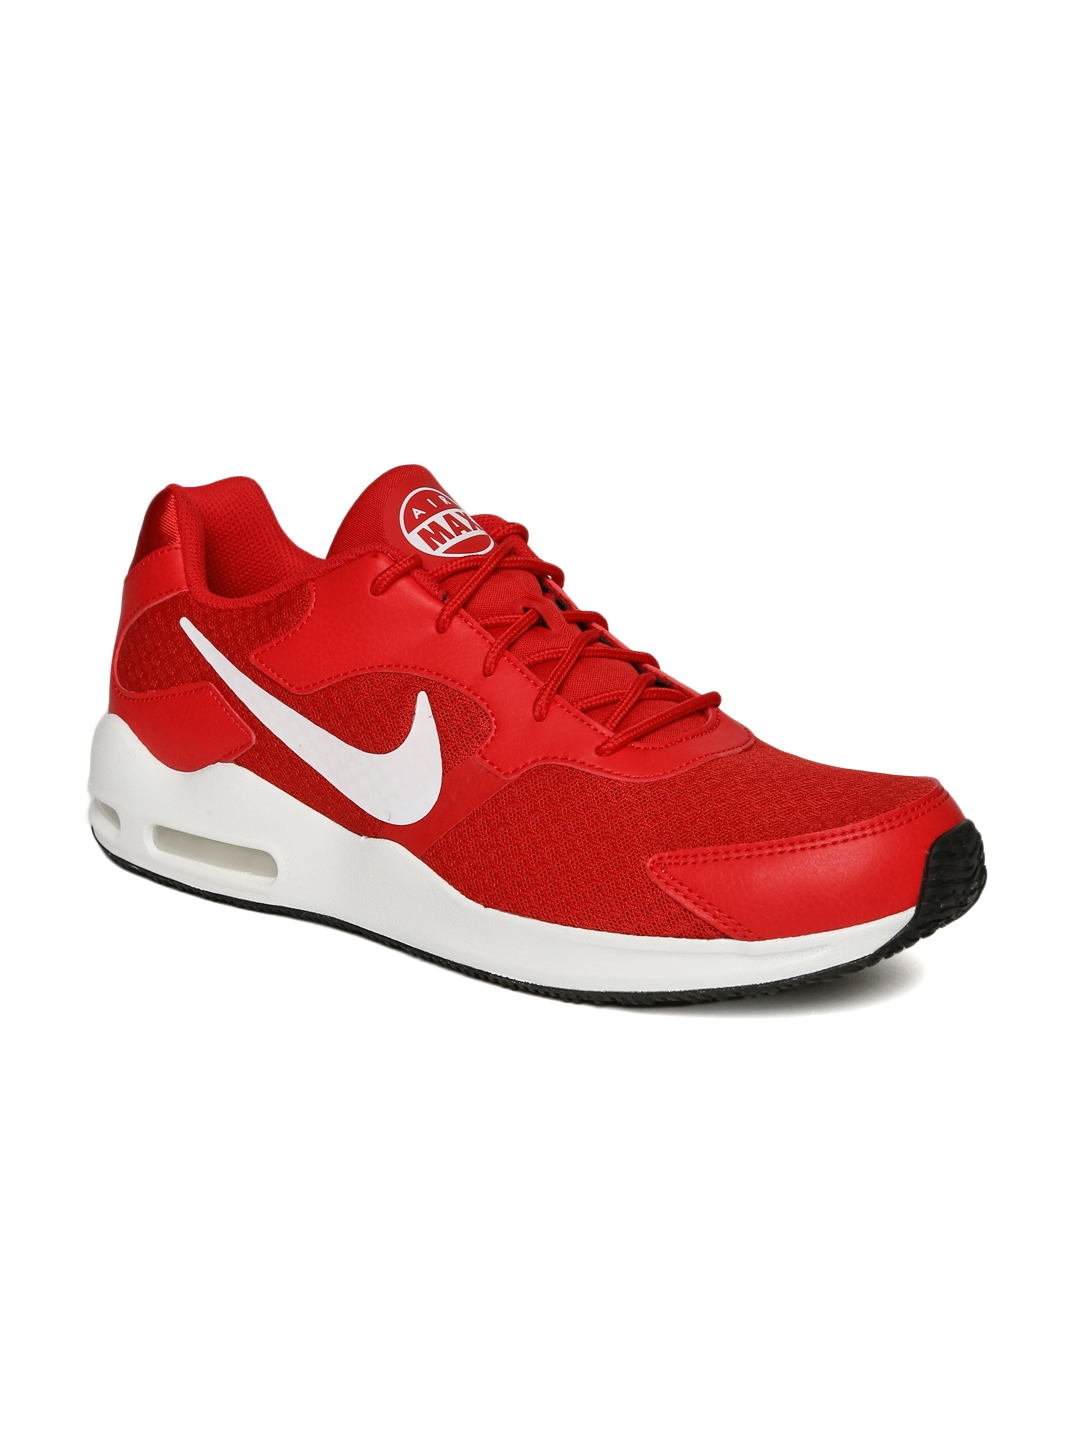 check out 89ba2 4e77d Nike Men Red Air Max Guile Sneakers